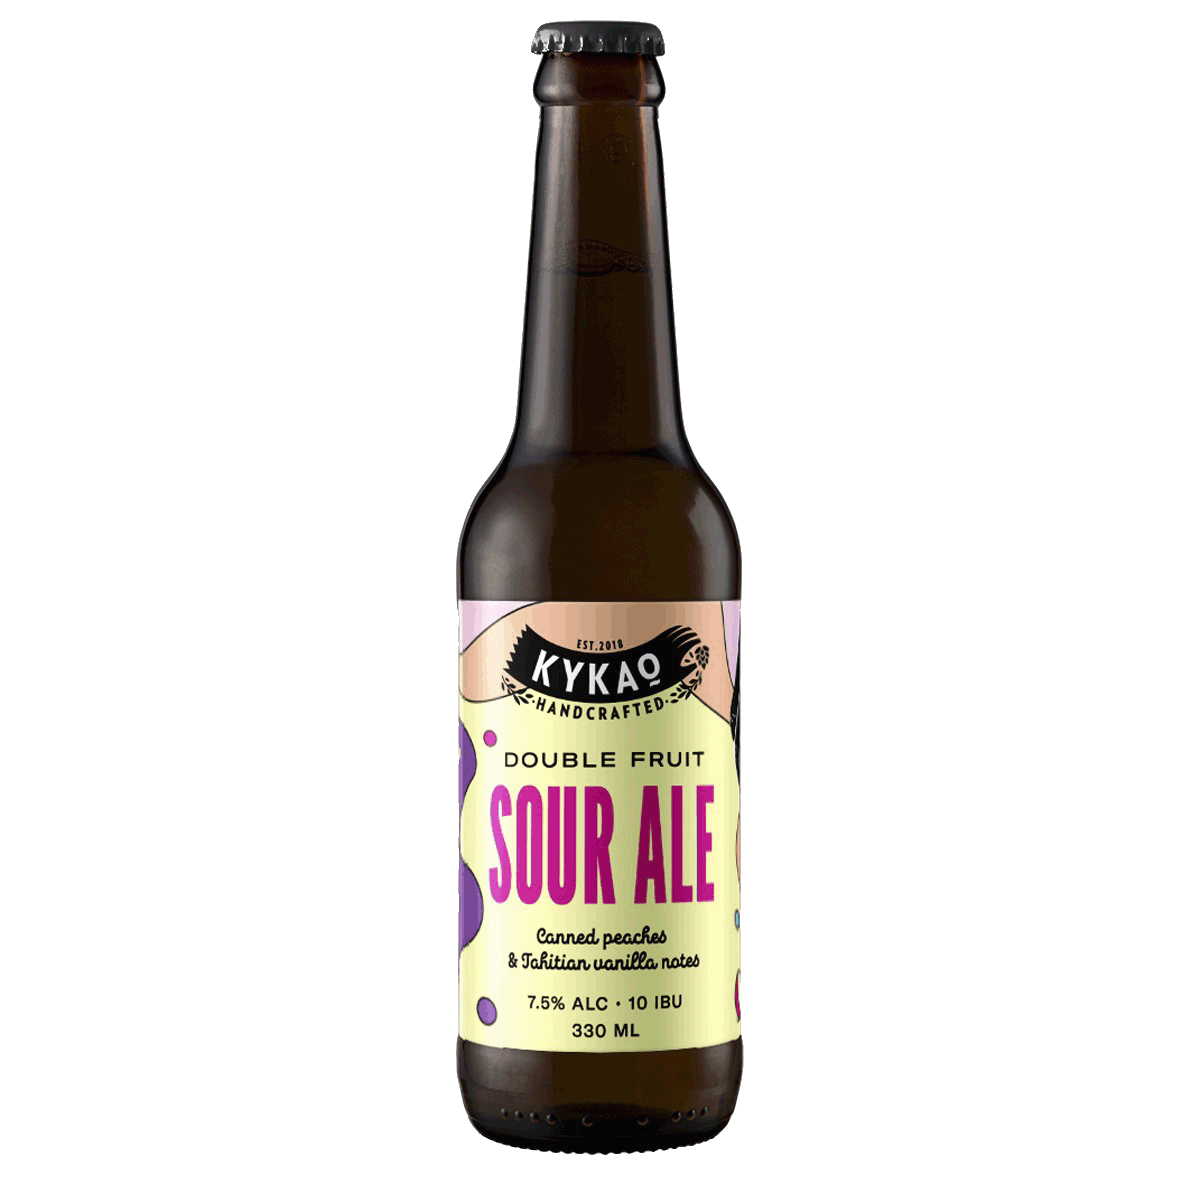 Double Fruited Sour Ale